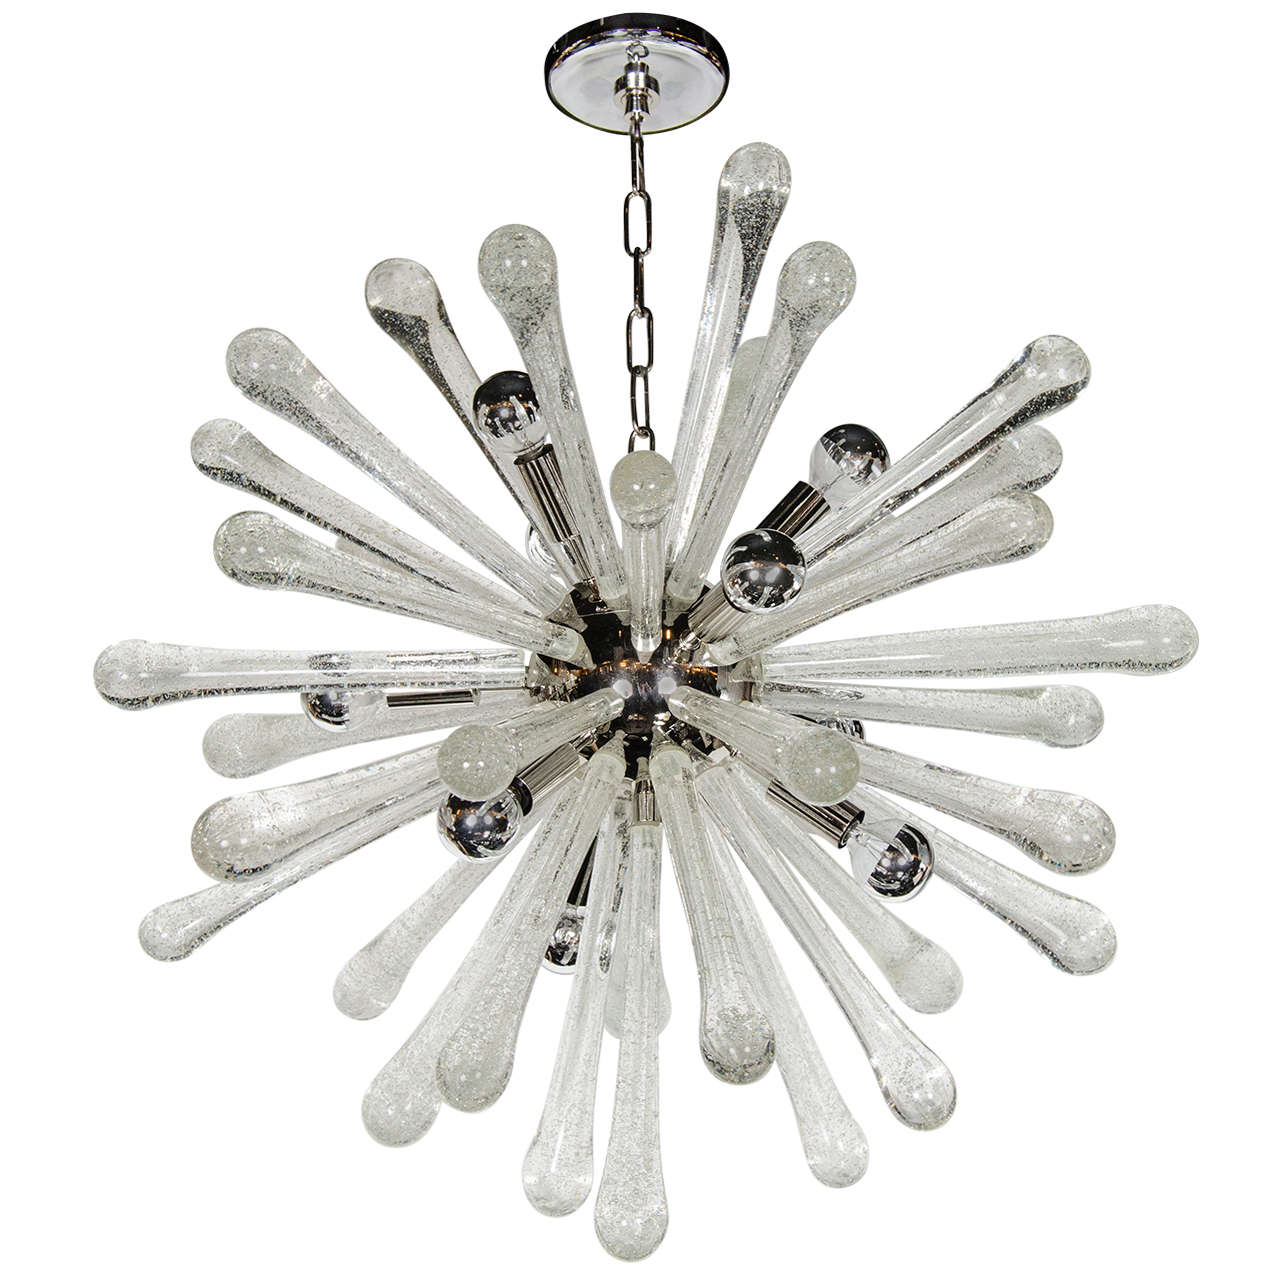 Stunning Murano Glass Sputnik Chandelier with Chrome Fittings 1